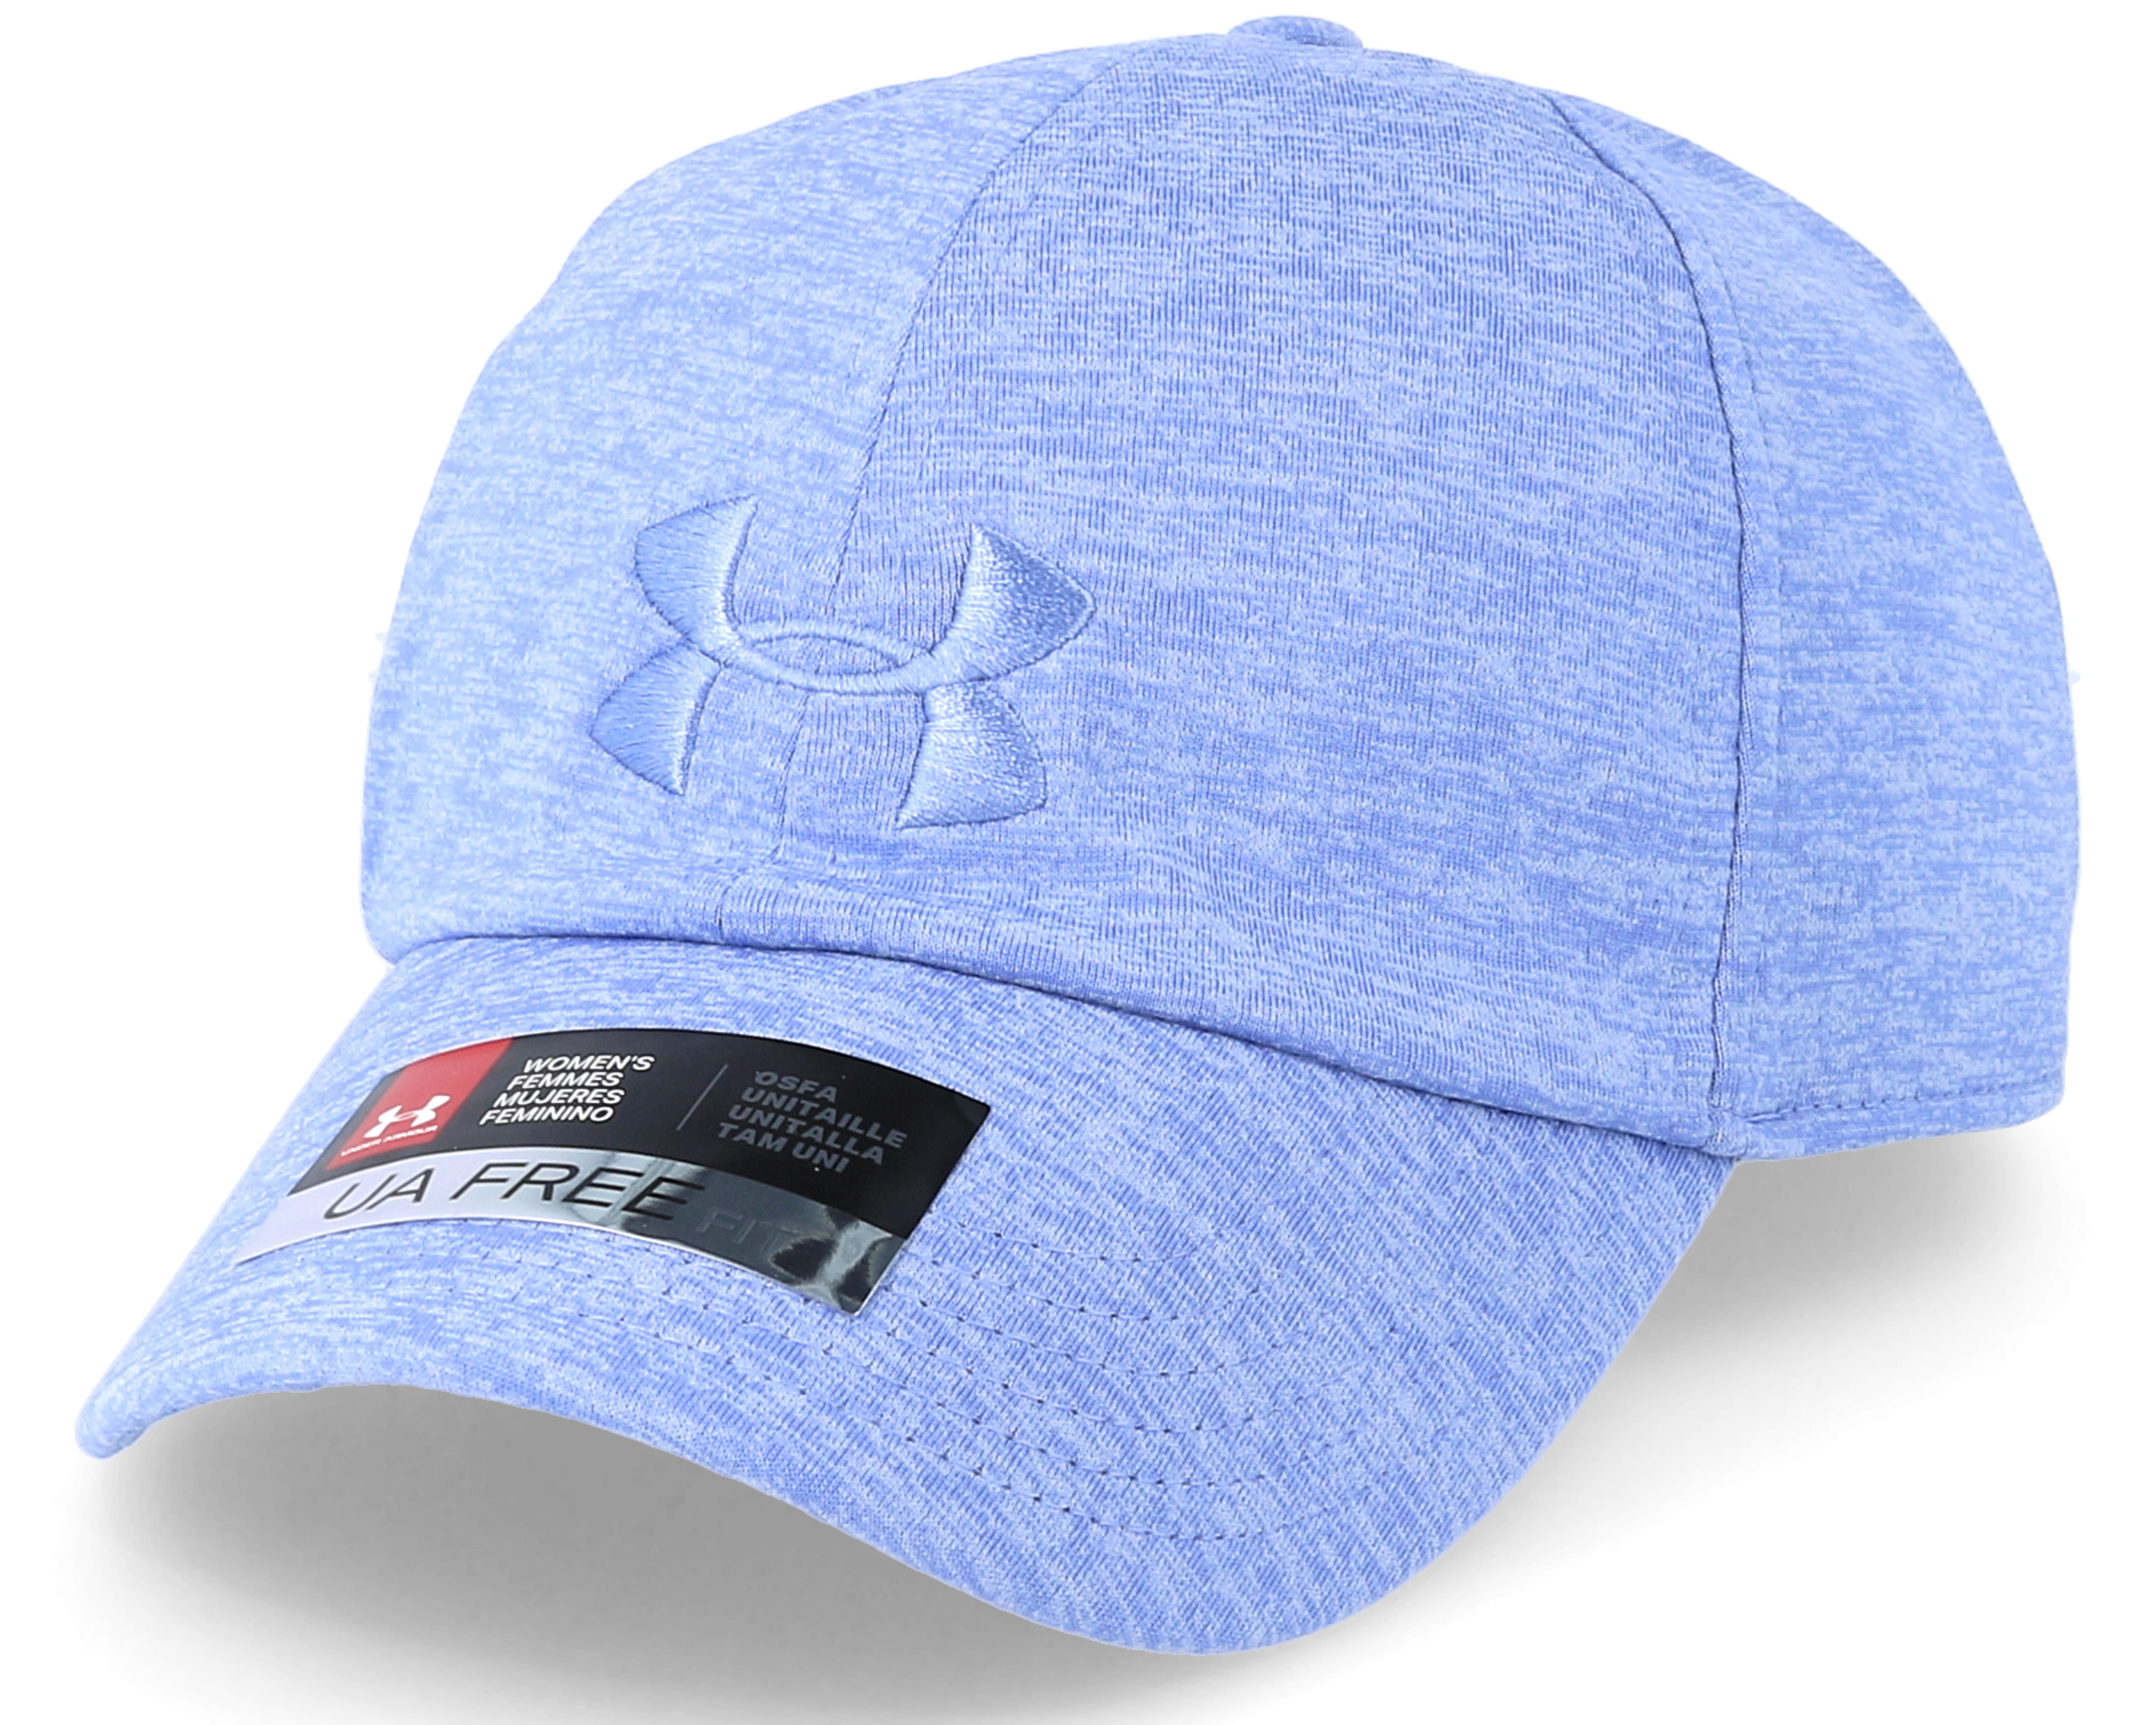 a64991db46a Twisted Renegade Adjustable - Under Armour caps